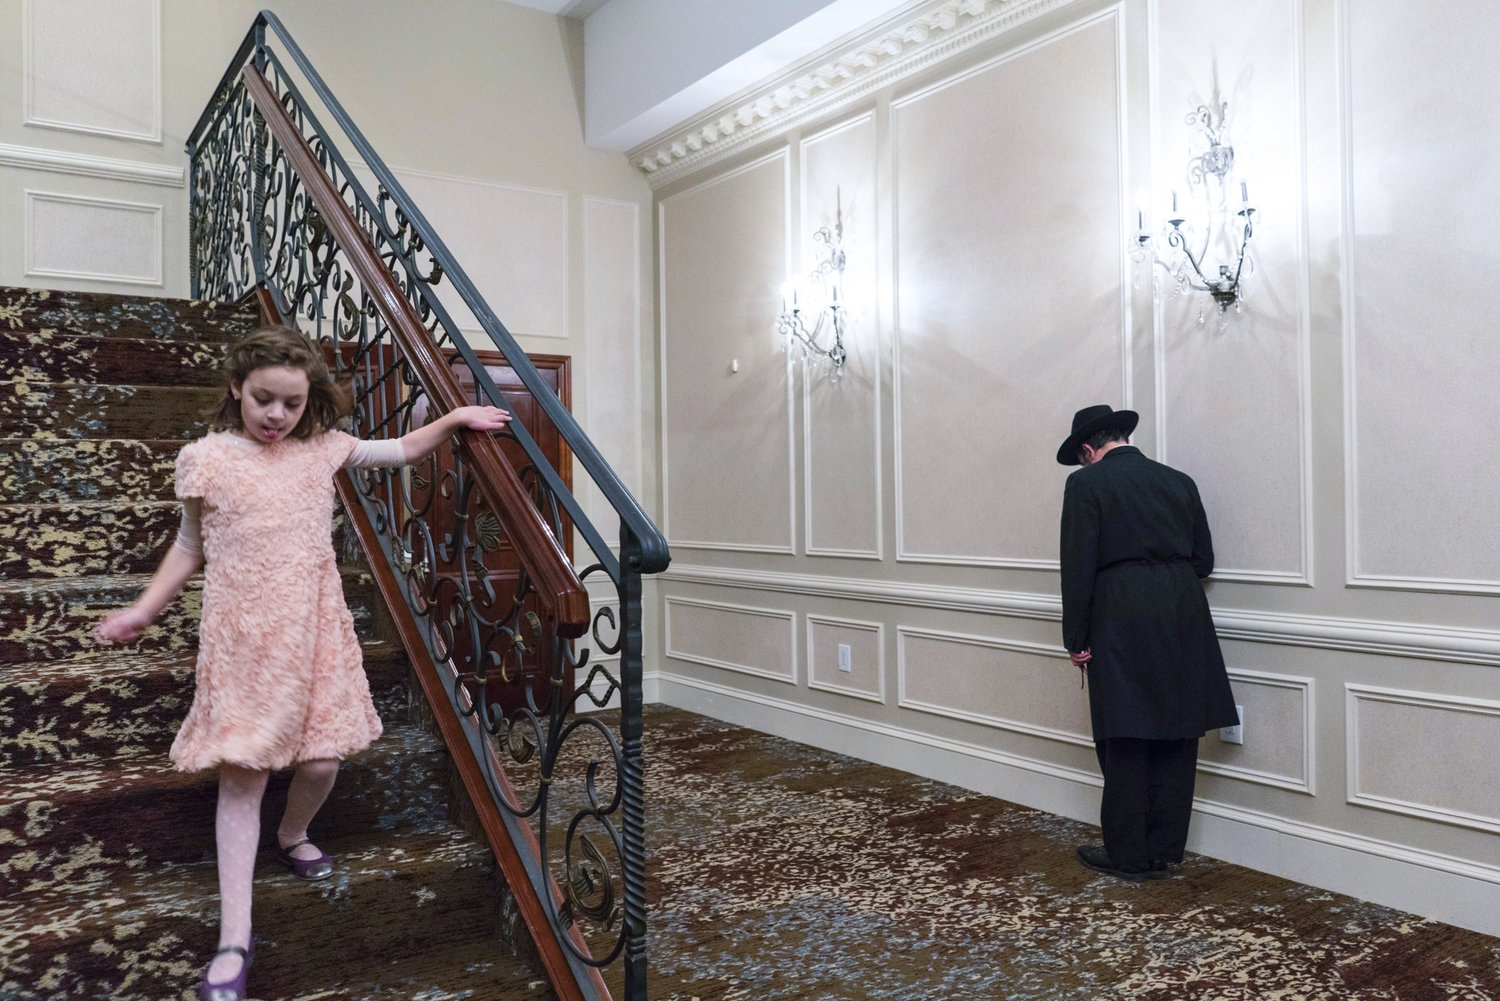 A young girl descends a flight of stairs at the Rachik's wedding reception while an older guest prays in the hallway, Crown Heights, Brooklyn.